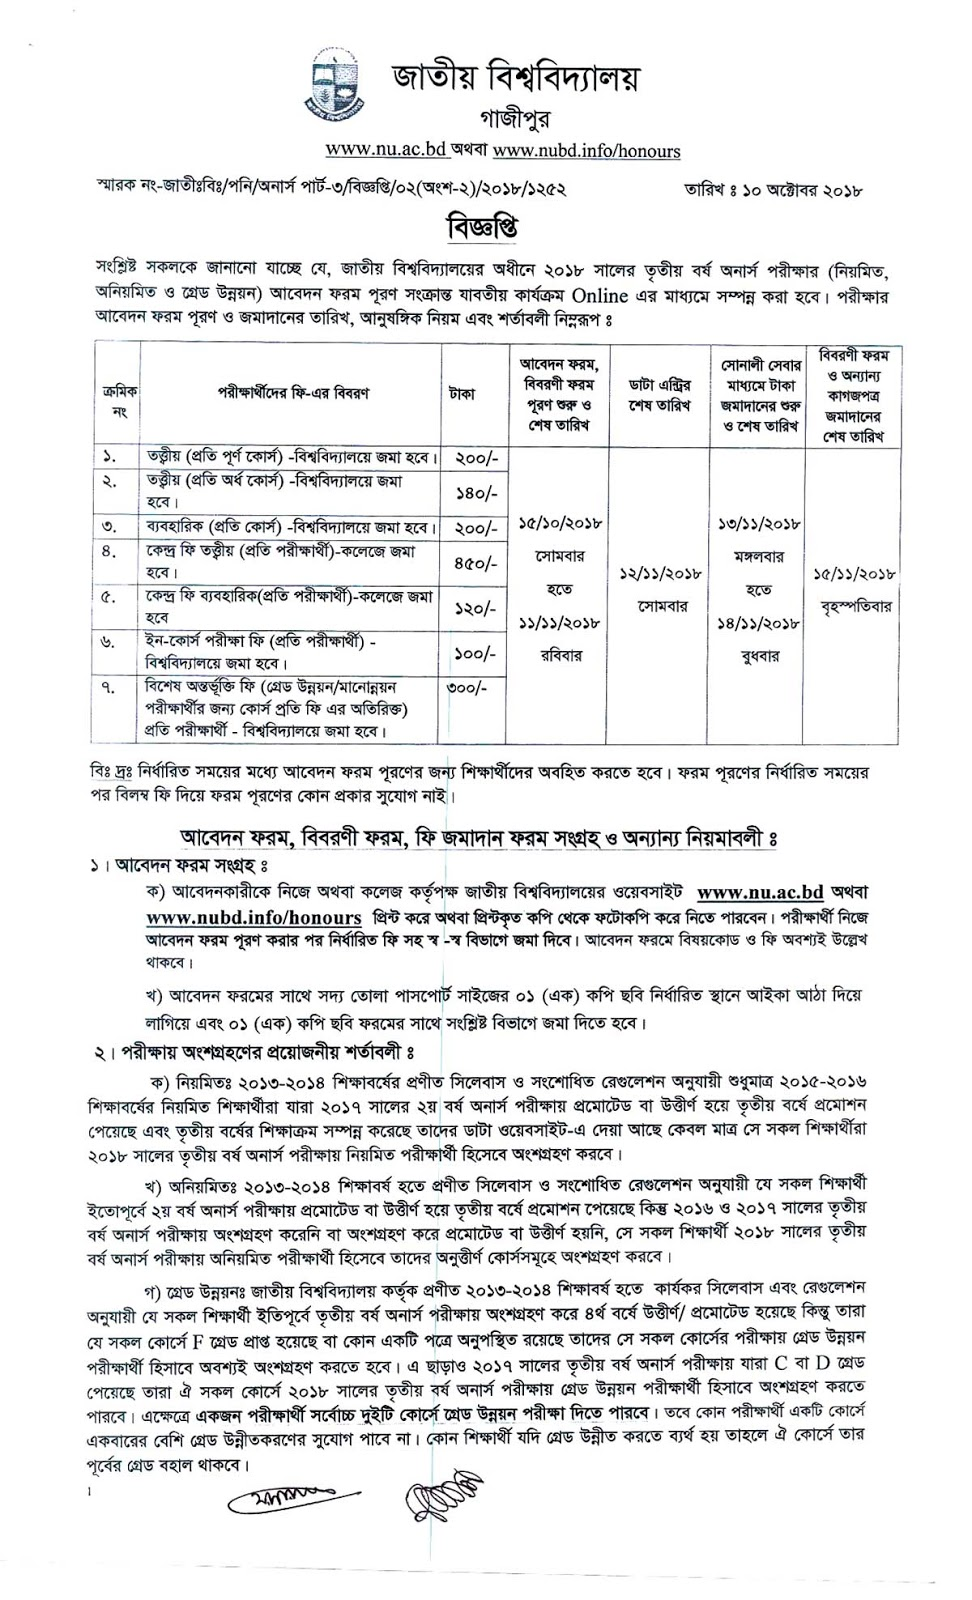 Honours 3rd year form fill up notice 2018